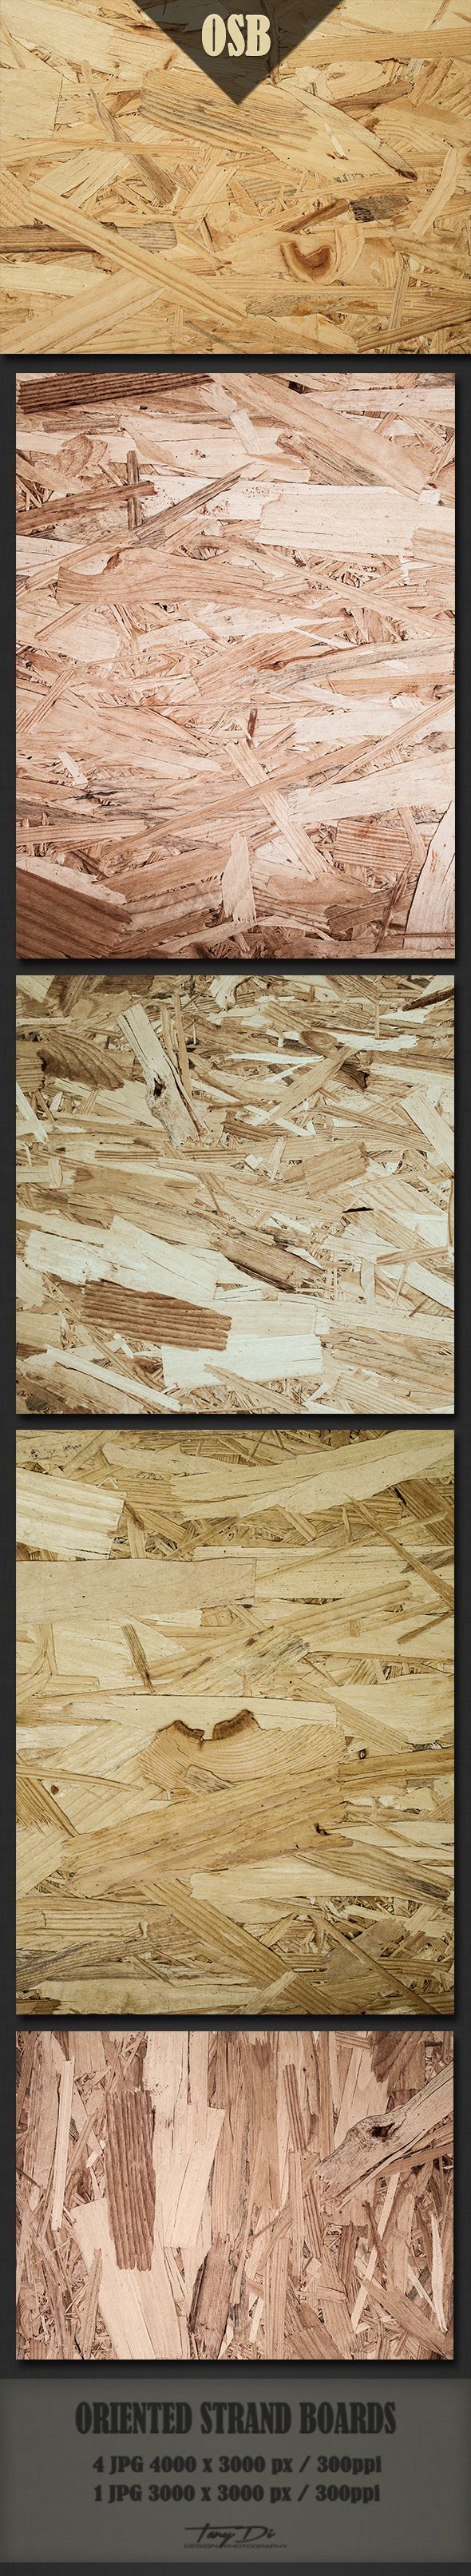 Osb Oriented Strand Boards By Tanydi Tany Dimitrova Via